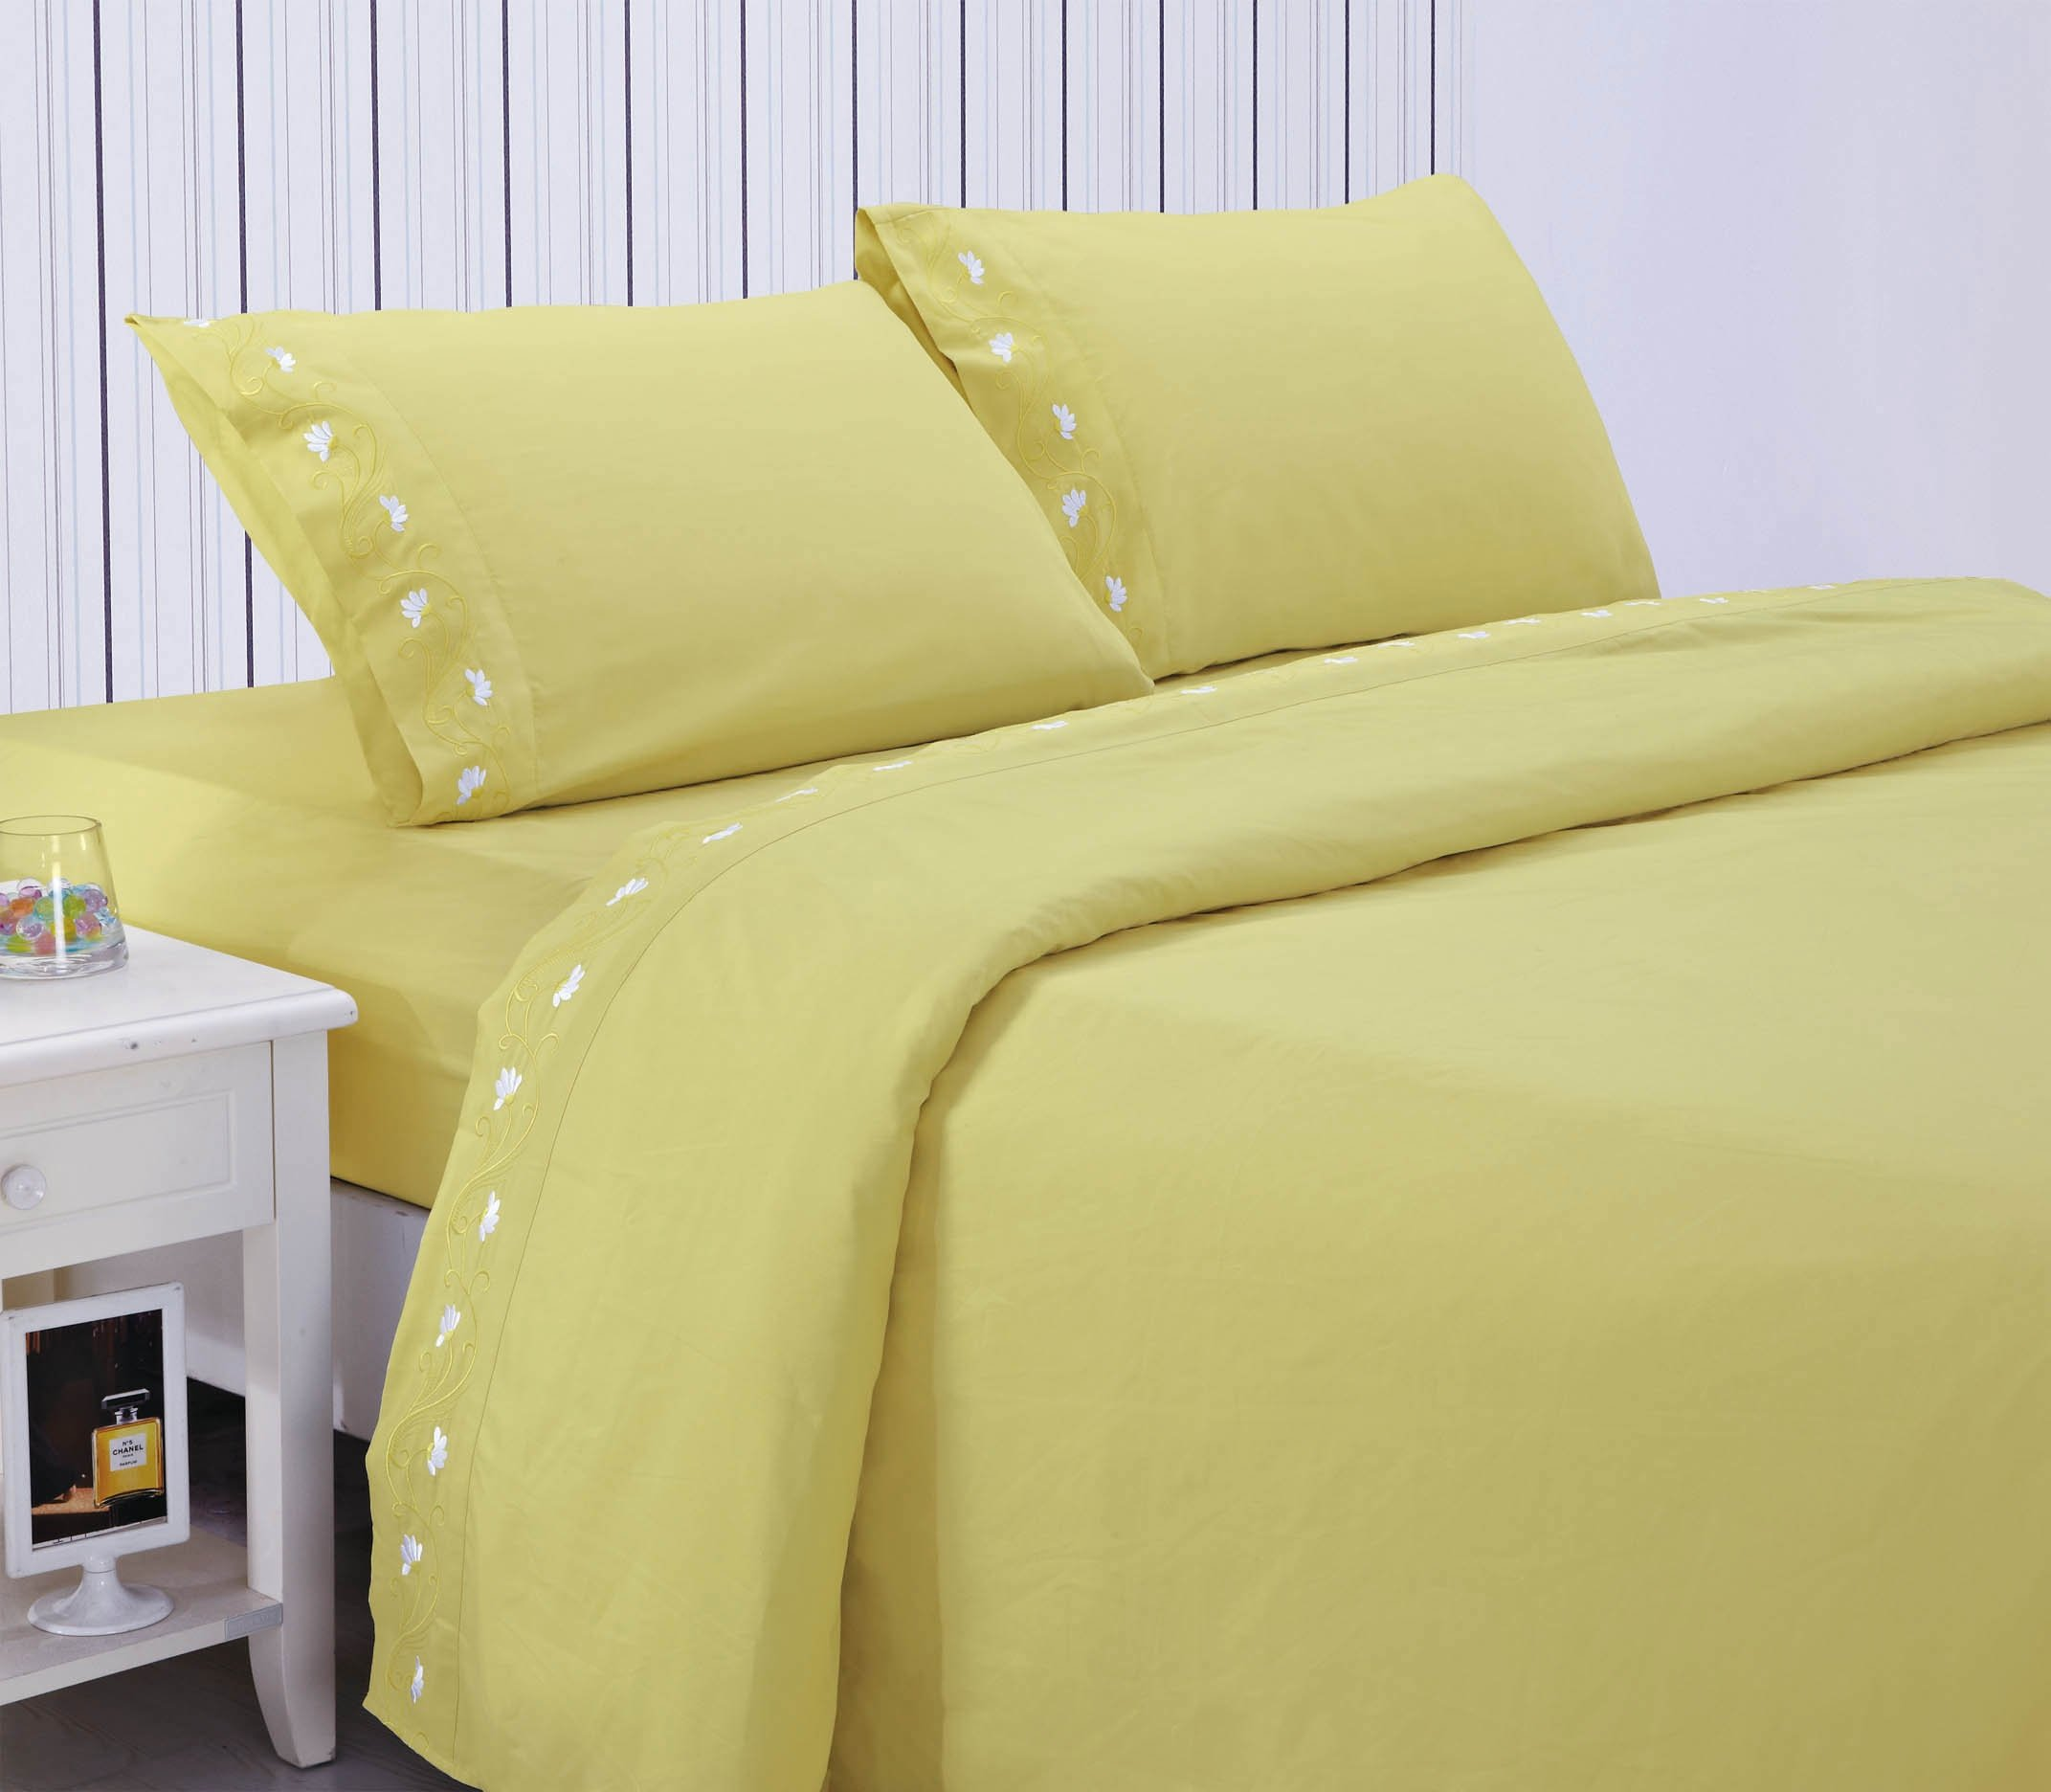 Home Simplicity 90GSM Embroidery Sheet Set, Queen, Chartreuse - Contains one flat sheet, one fitted sheet and two standard pillow cases Fits up to 17 inch deep mattress! Machine washable and tumble dry - sheet-sets, bedroom-sheets-comforters, bedroom - 719S3k5PU0L -